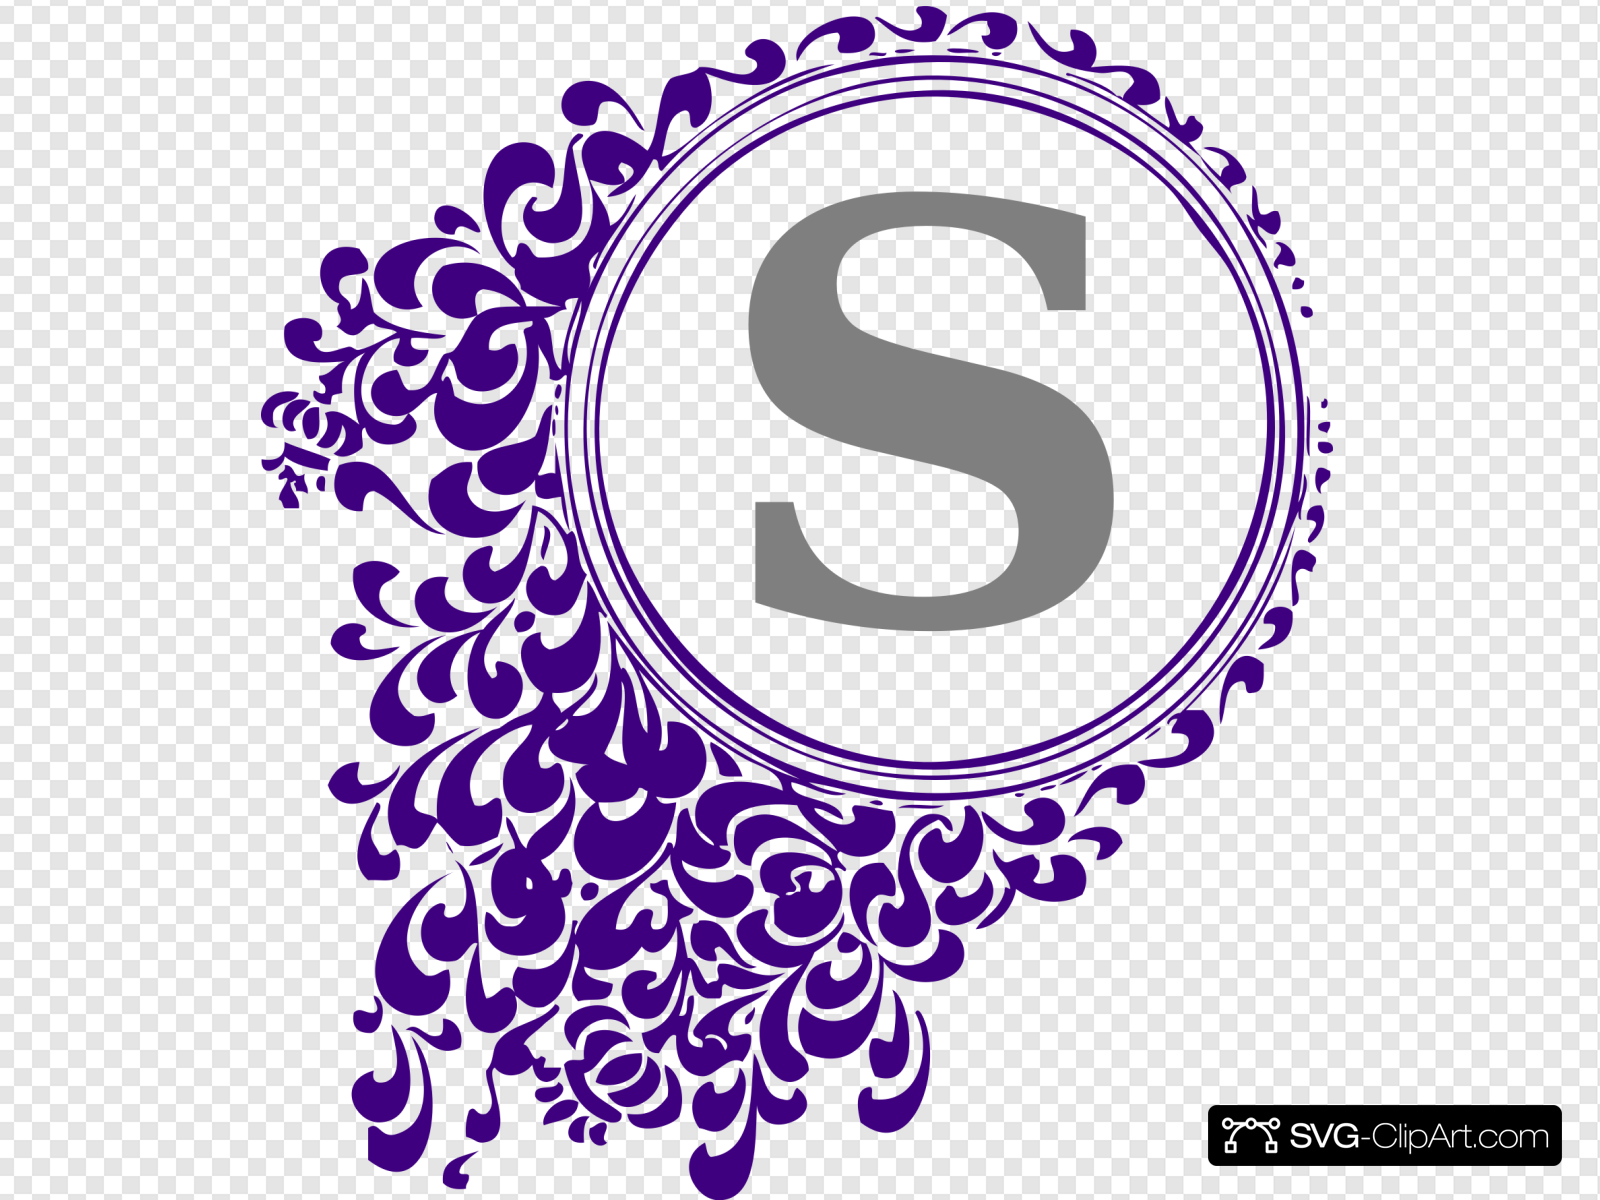 Purple Vintage Clip art, Icon and SVG.